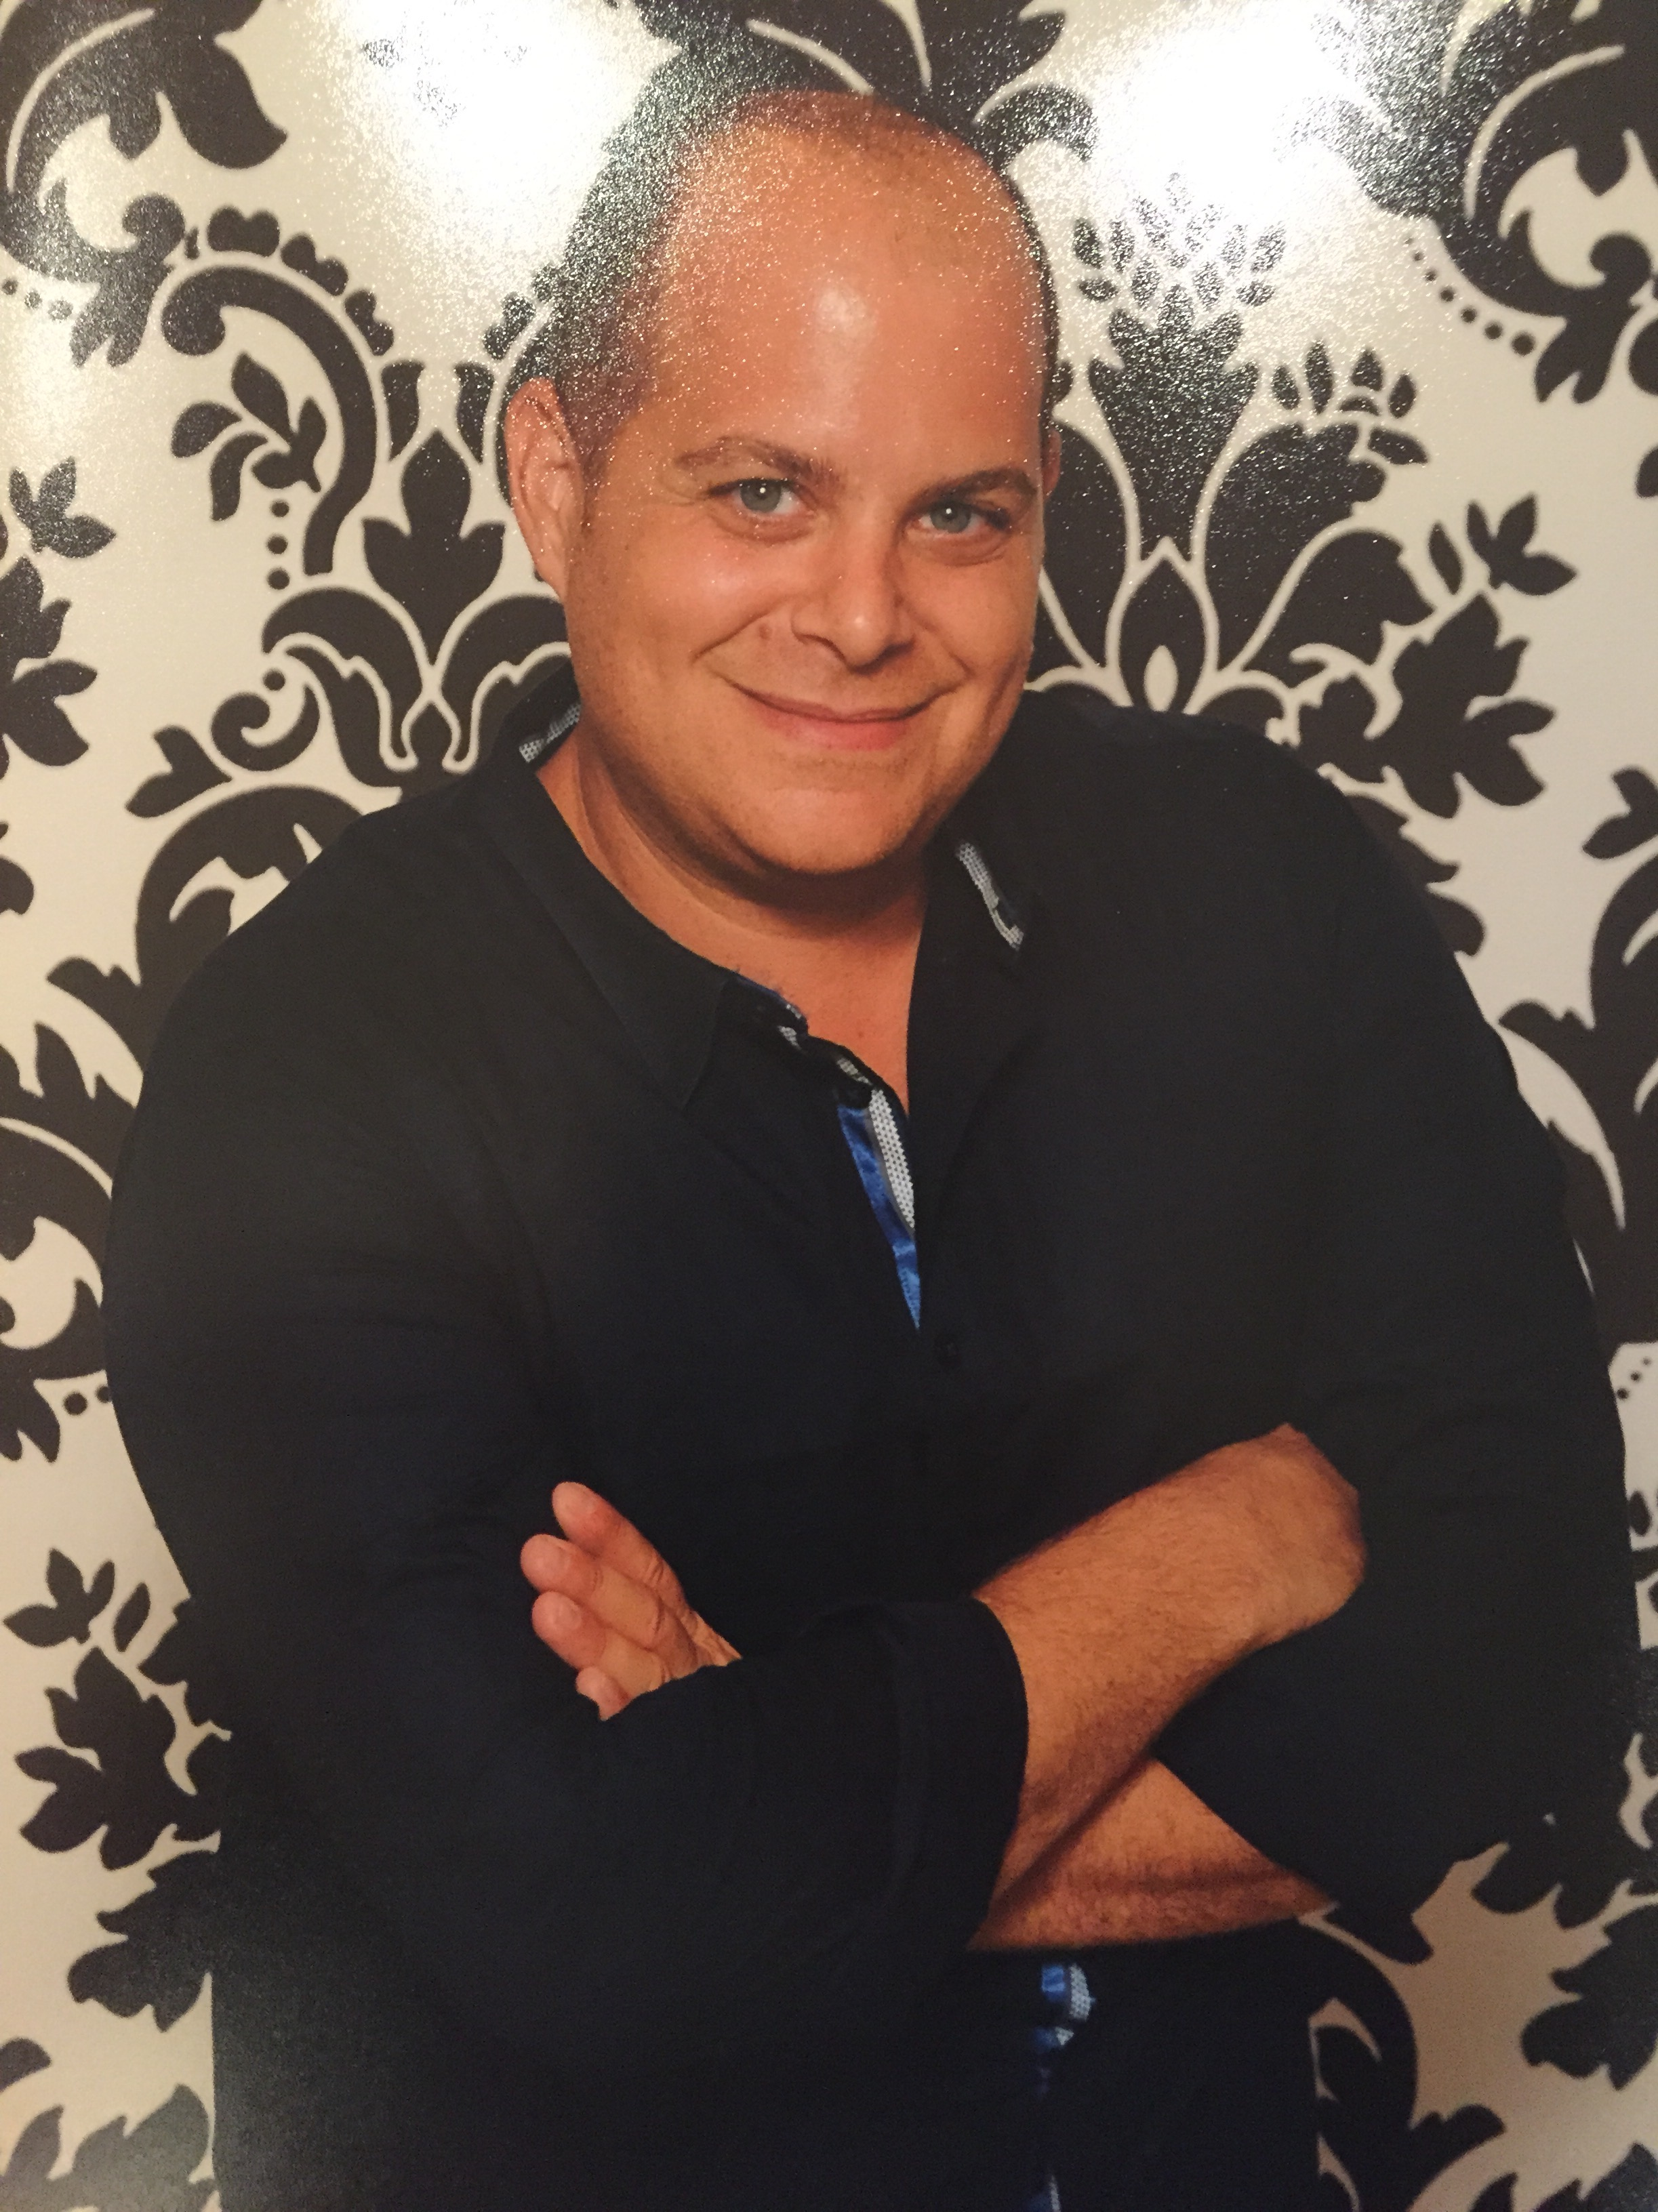 Dino Tolentino Toronto's Ontario's Canada's World's Best Hairdresser and Hair Colorist